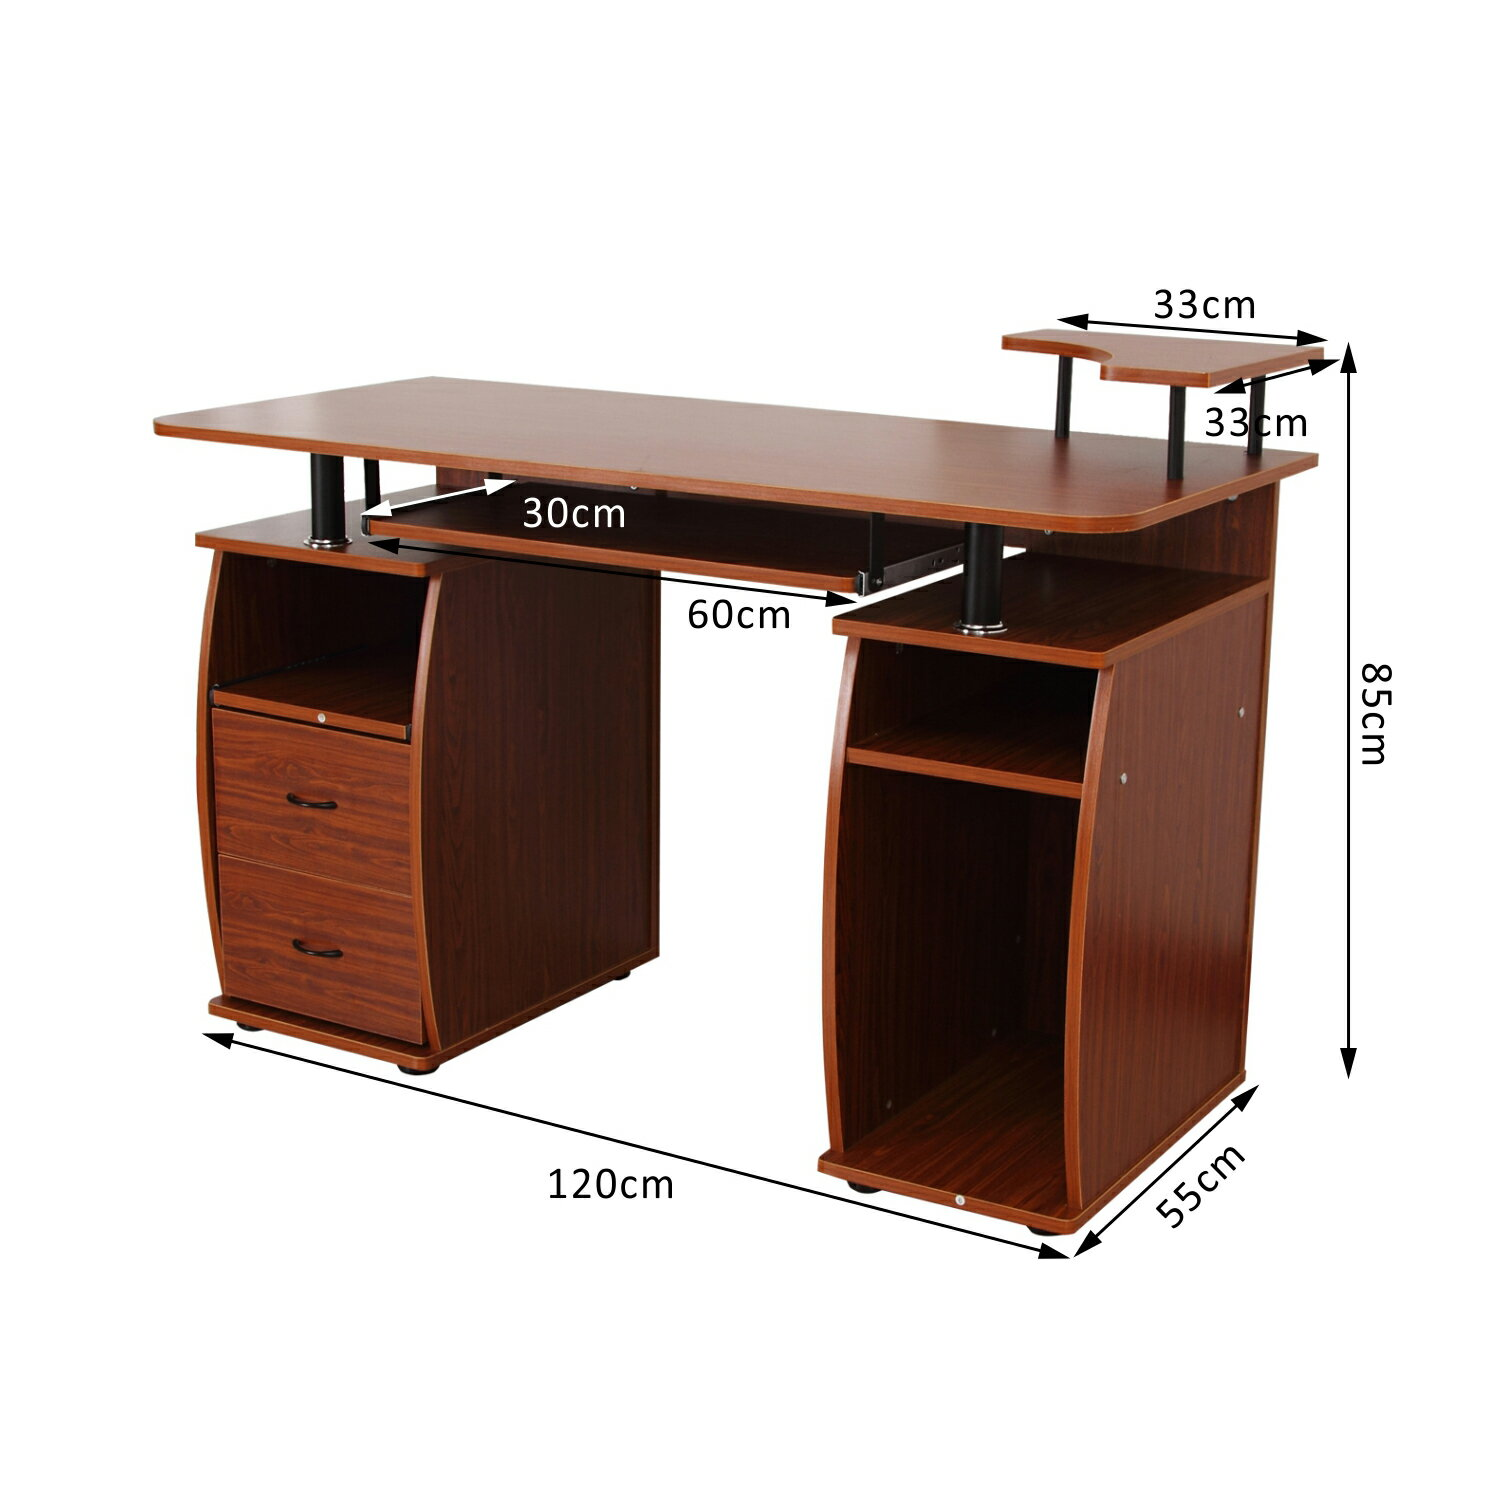 Homcom Home Office Dorm Room Computer Desk With Keyboard Tray Brown Wood 2